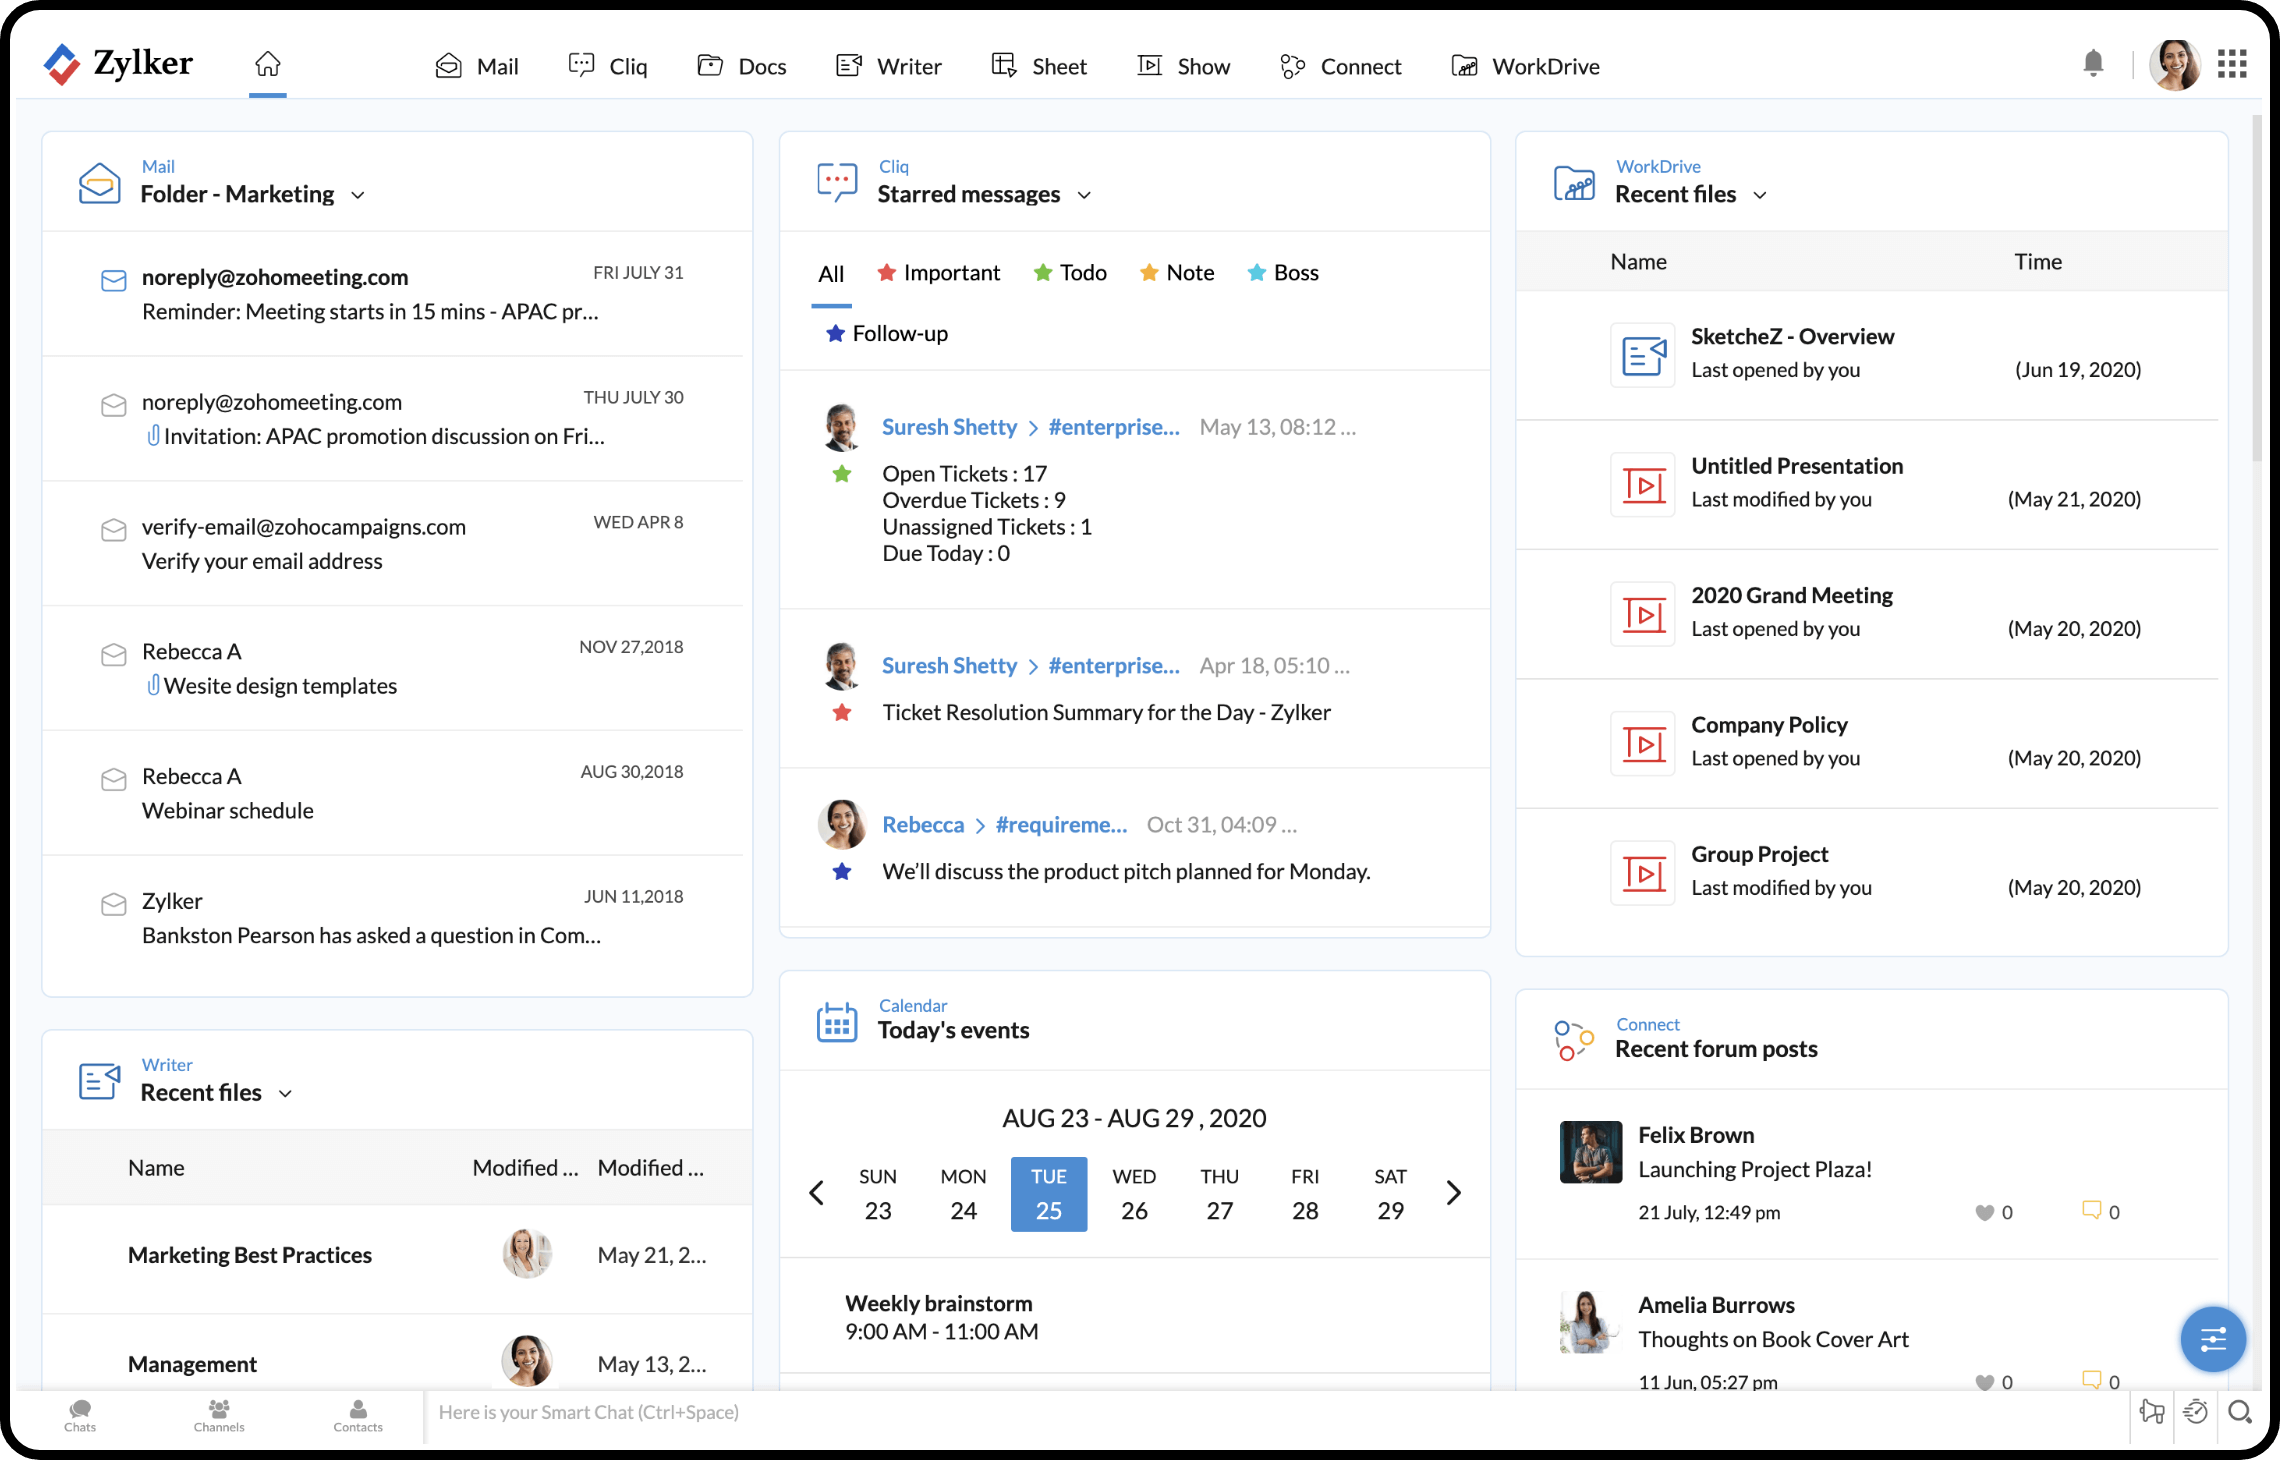 Seamless multitasking with central collaboration dashboard